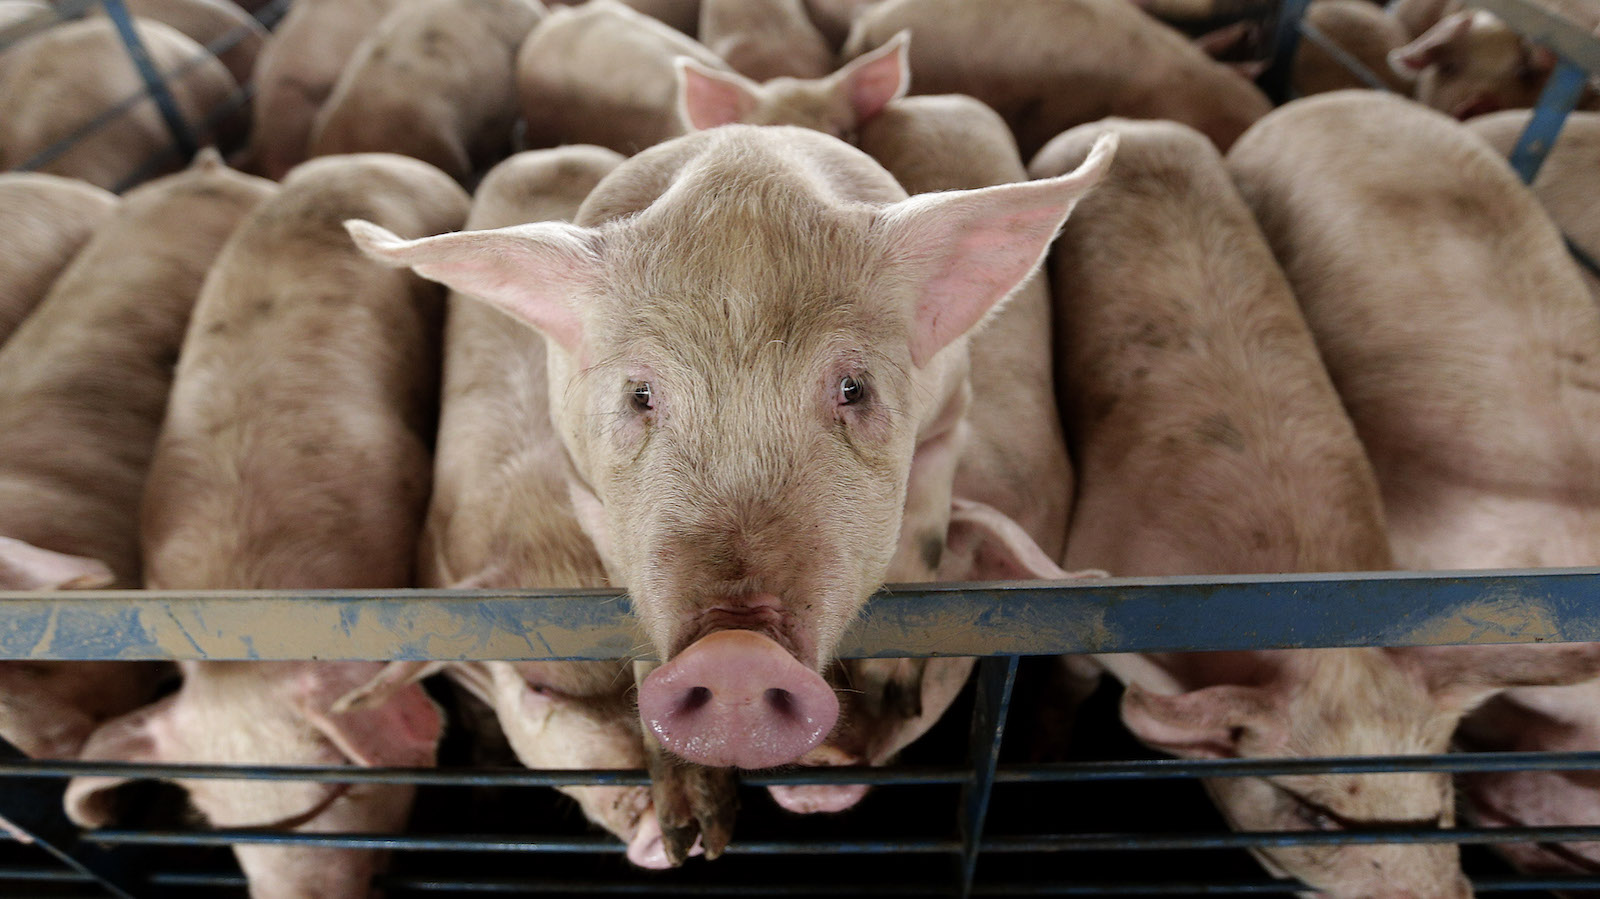 In this photo taken Nov. 11. 2015, a pig looks out of its pen at Seabord Foods' Ladder Creek hog feeding operation near Tribune, Kan. The operation is the nation's second largest confined hog feeding farm and the company is set to build another site nearby if granted a permit by the state. The company is pumping wells that had been idled for a decade. Environmentalists and some residents fear that instead of preserving the remaining water for residents, the county will be a desert once the hogs and the water are long gone. (AP Photo/Charlie Riedel)